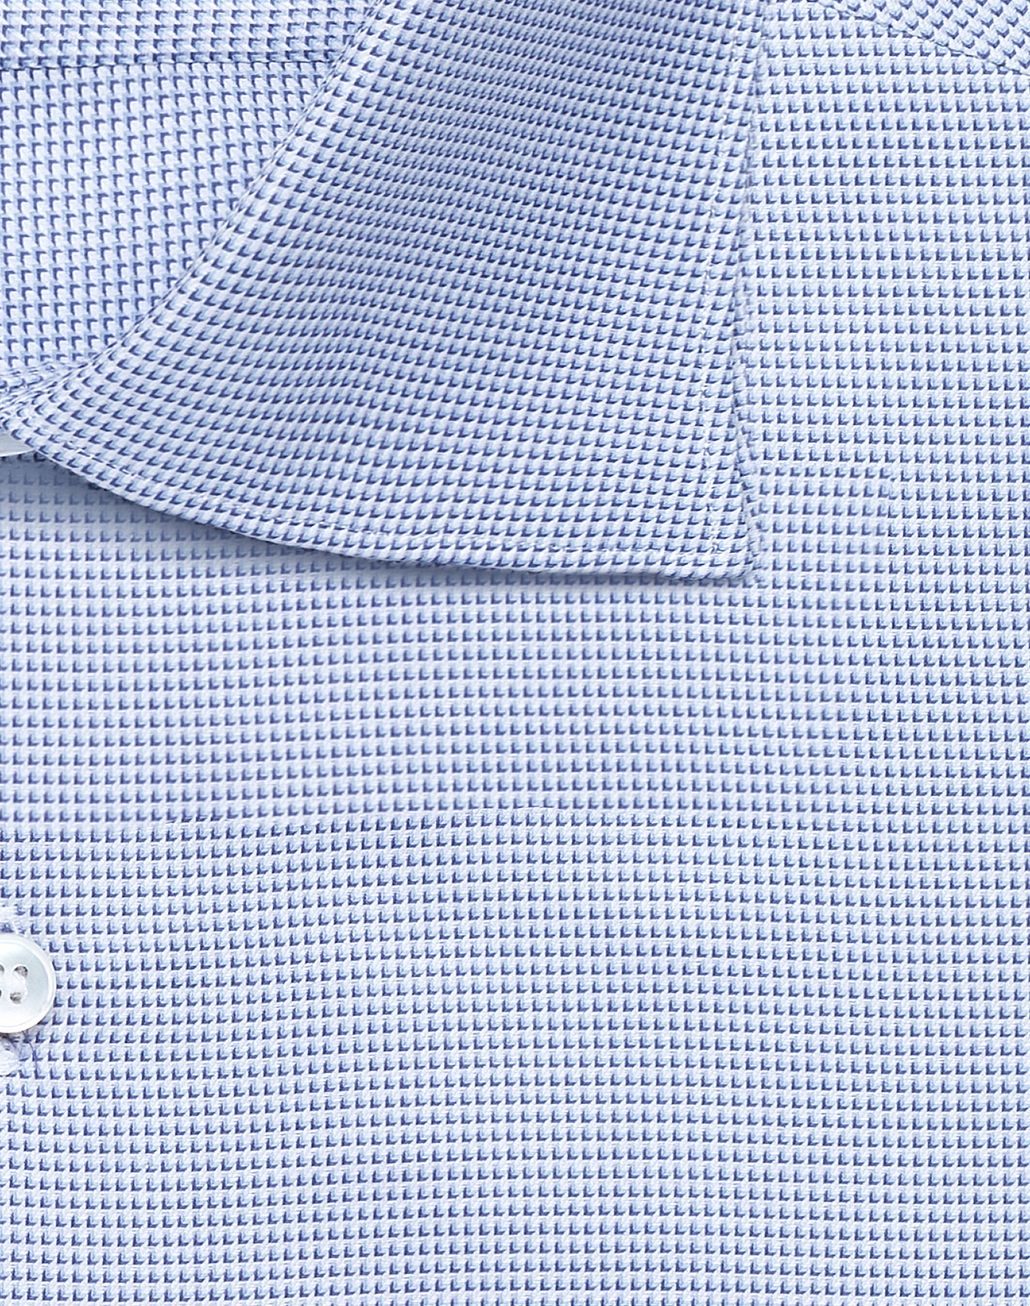 BRIONI Bluette and White Micro-Design Formal Shirt Formal shirt U e